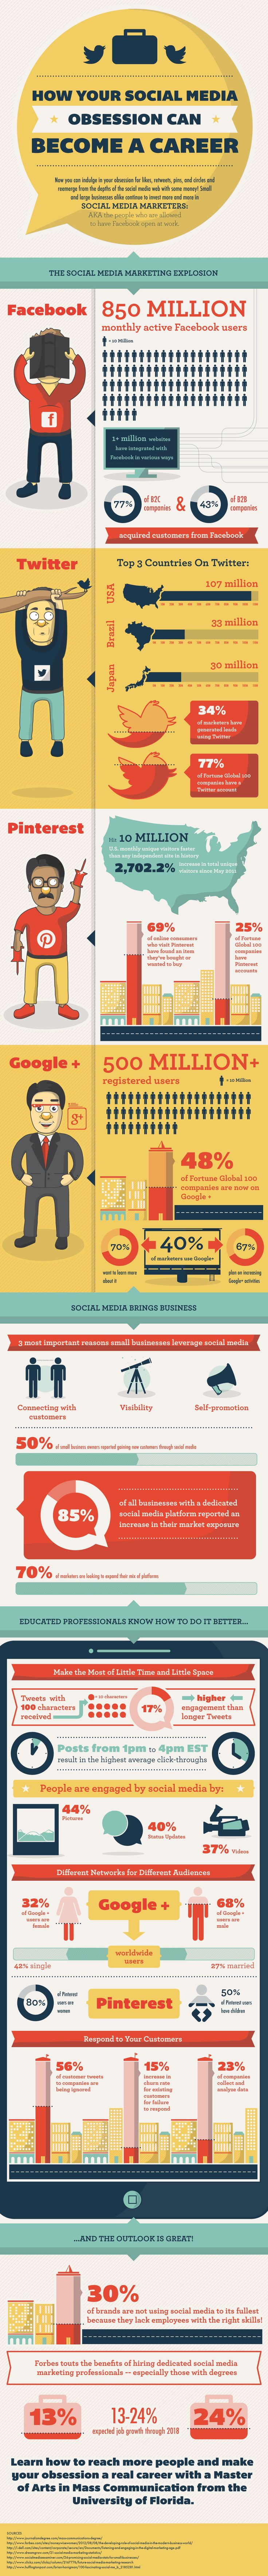 'How your social media obsession can become a career' #infographic by University of Florida Online MSM